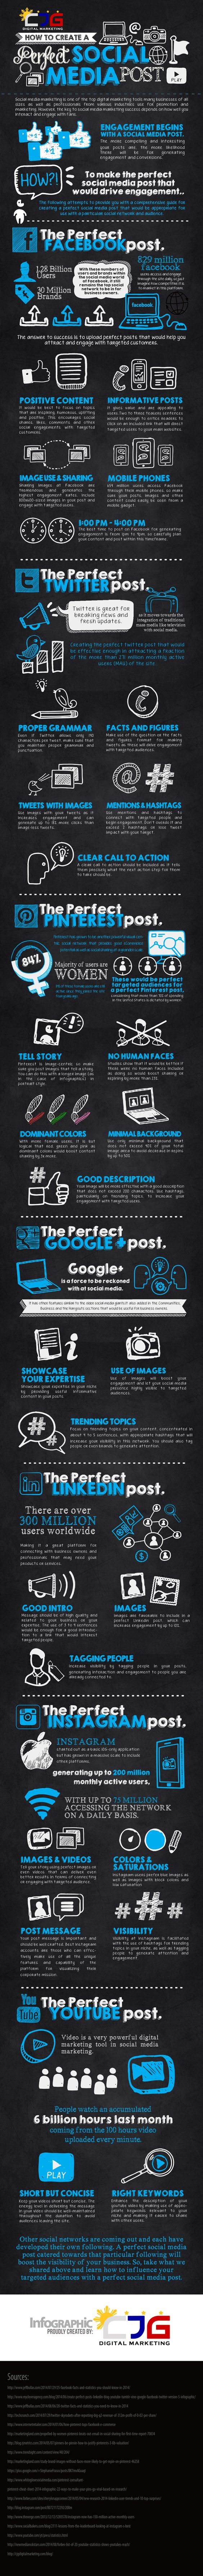 The Best Tips To Generate Interesting And Engaging Posts On The Top 7 Social Media Networks - #socialmedia #infographic